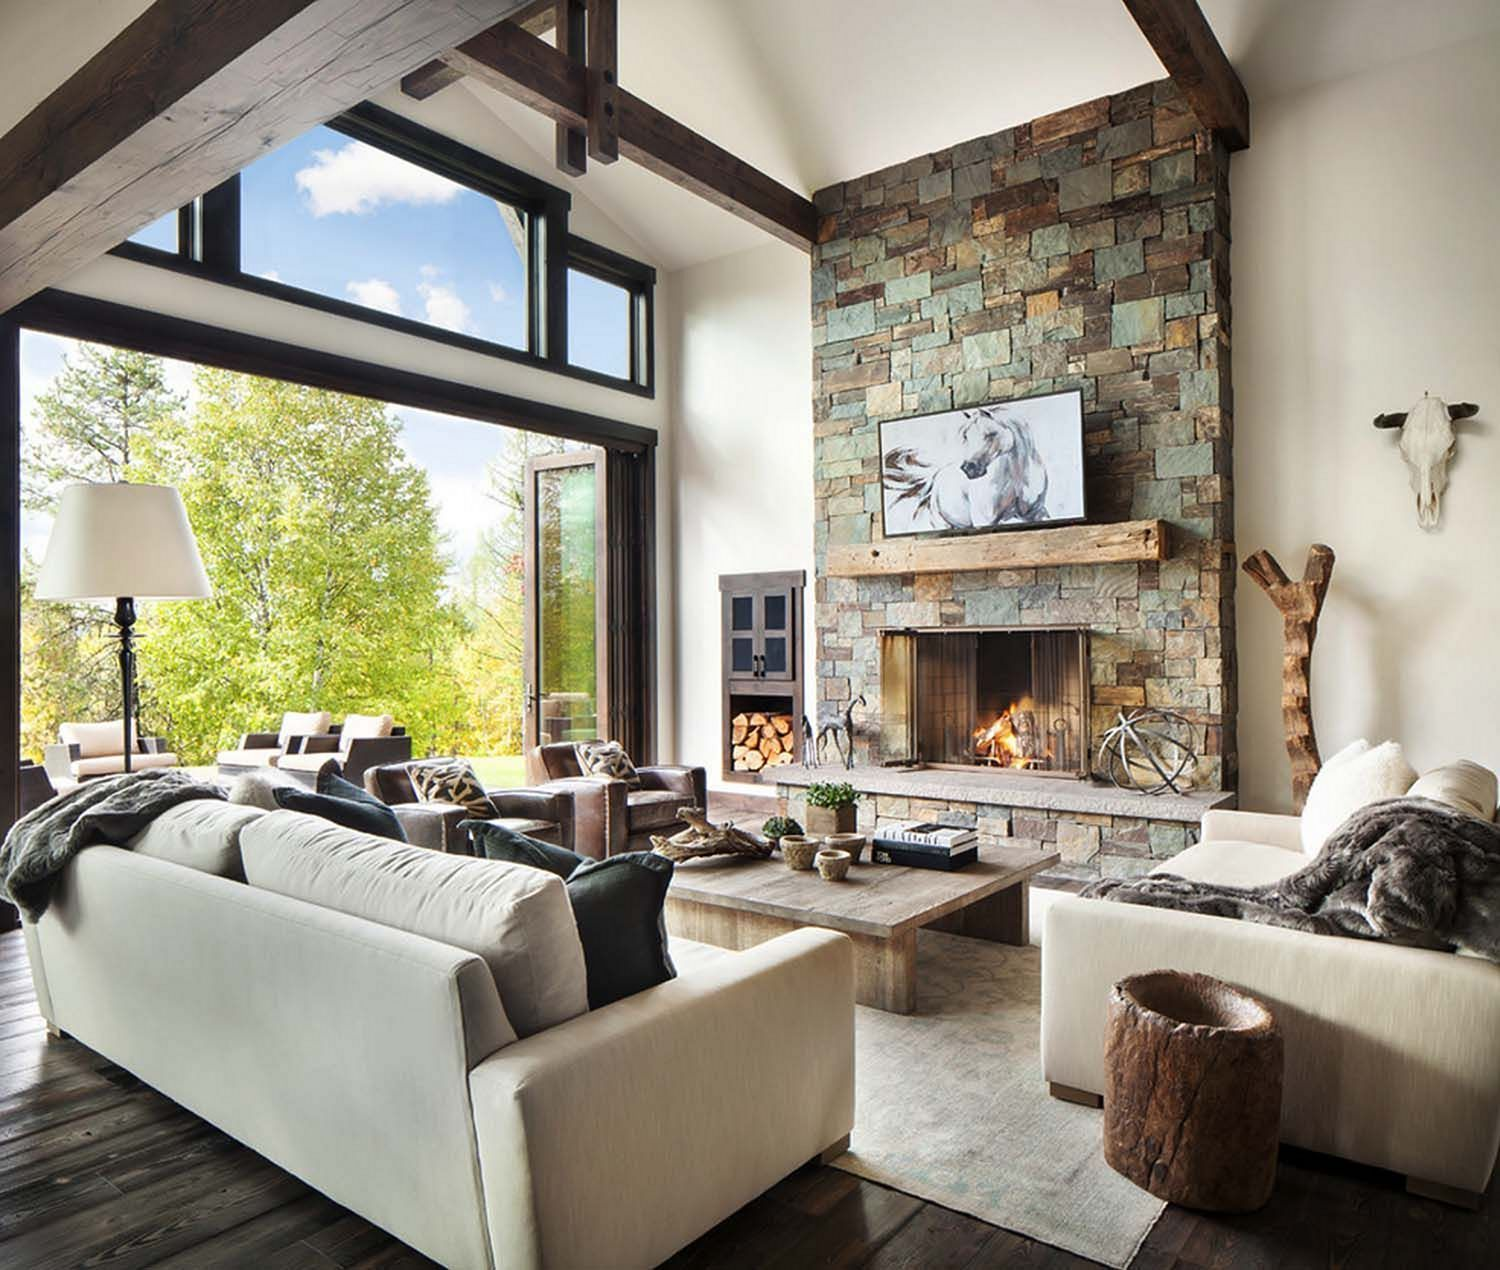 15 Rustic Living Room Interior Design For Awesome Home Decor Ideas Modern Rustic Living Room Modern Rustic Decor Living Room Modern Rustic Homes